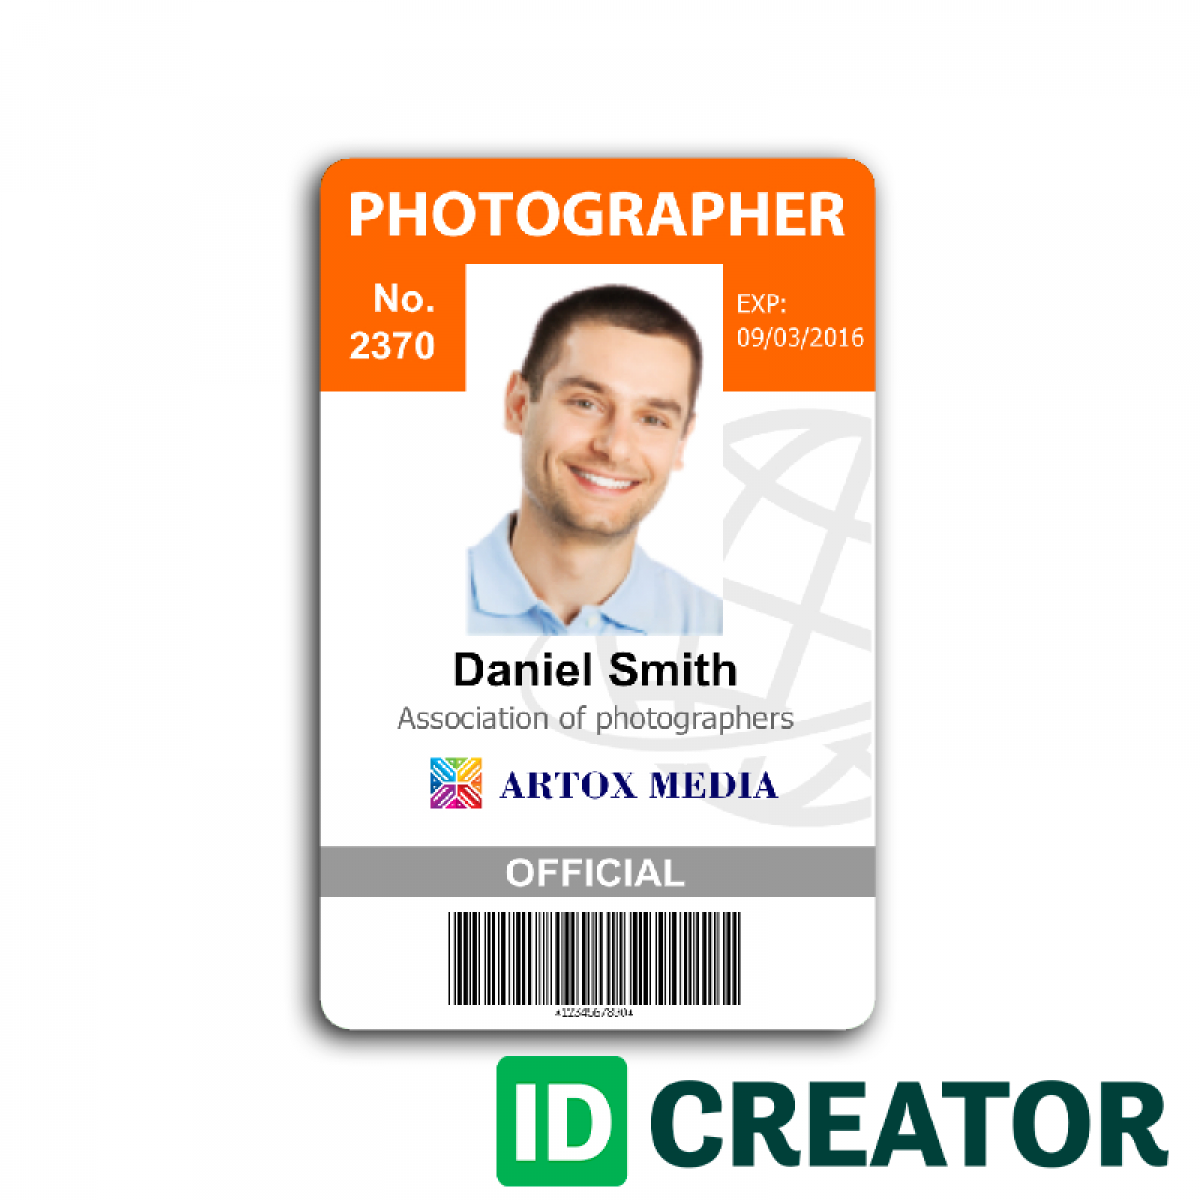 Front of ID Card - Photographer Identification Card 2